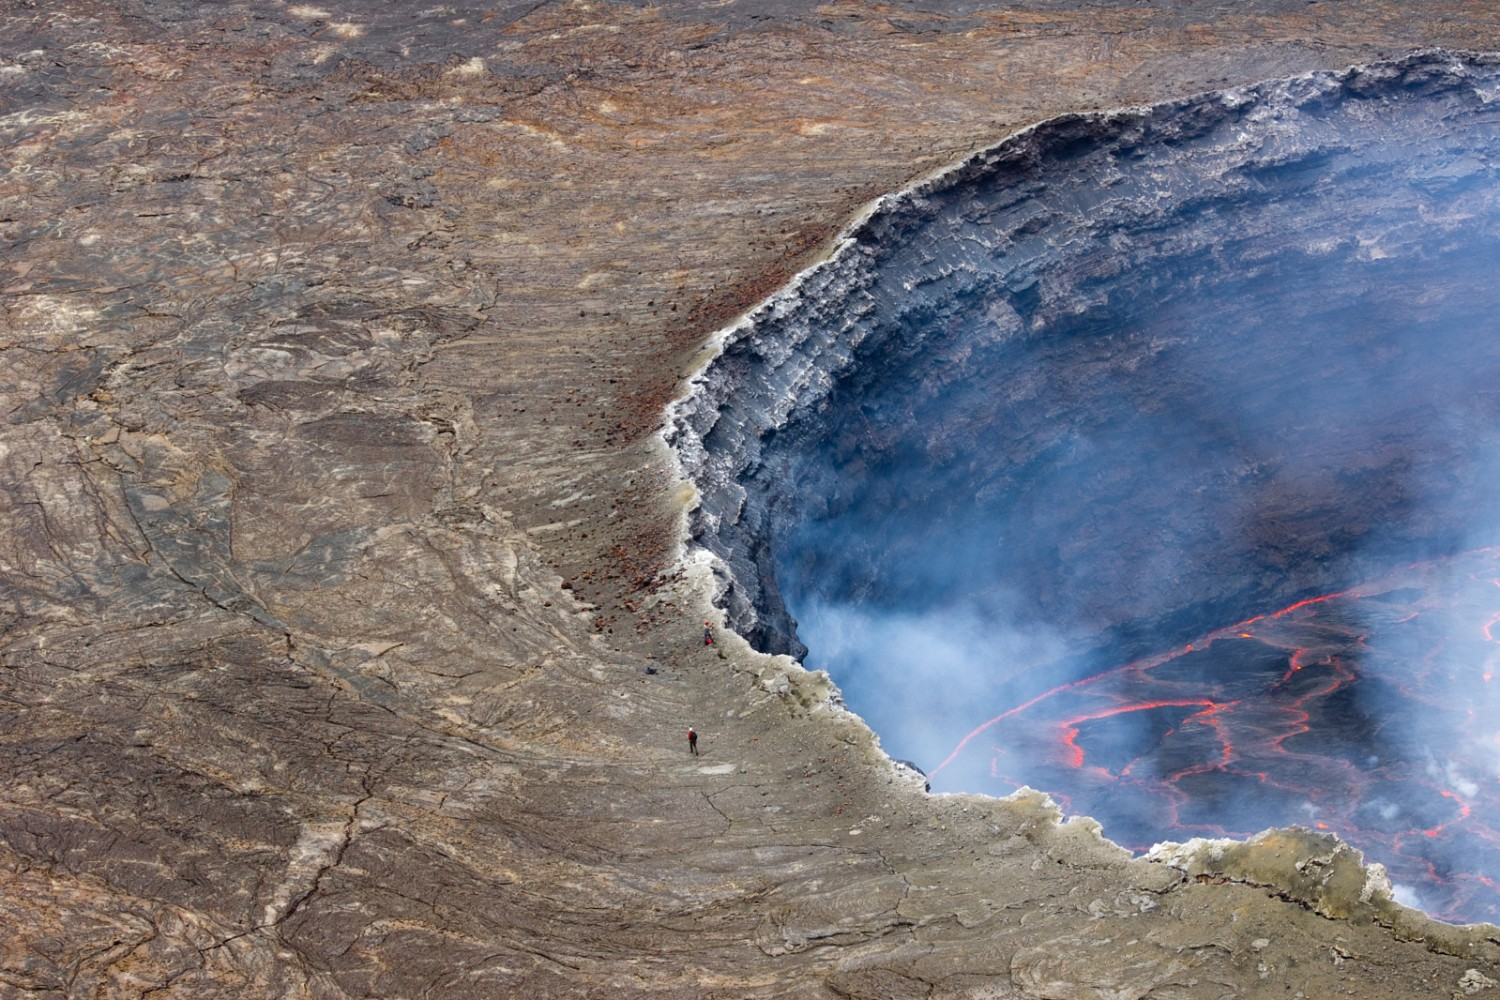 Incredible Photo of a Man On the Edge of the World's Largest Lava Lake